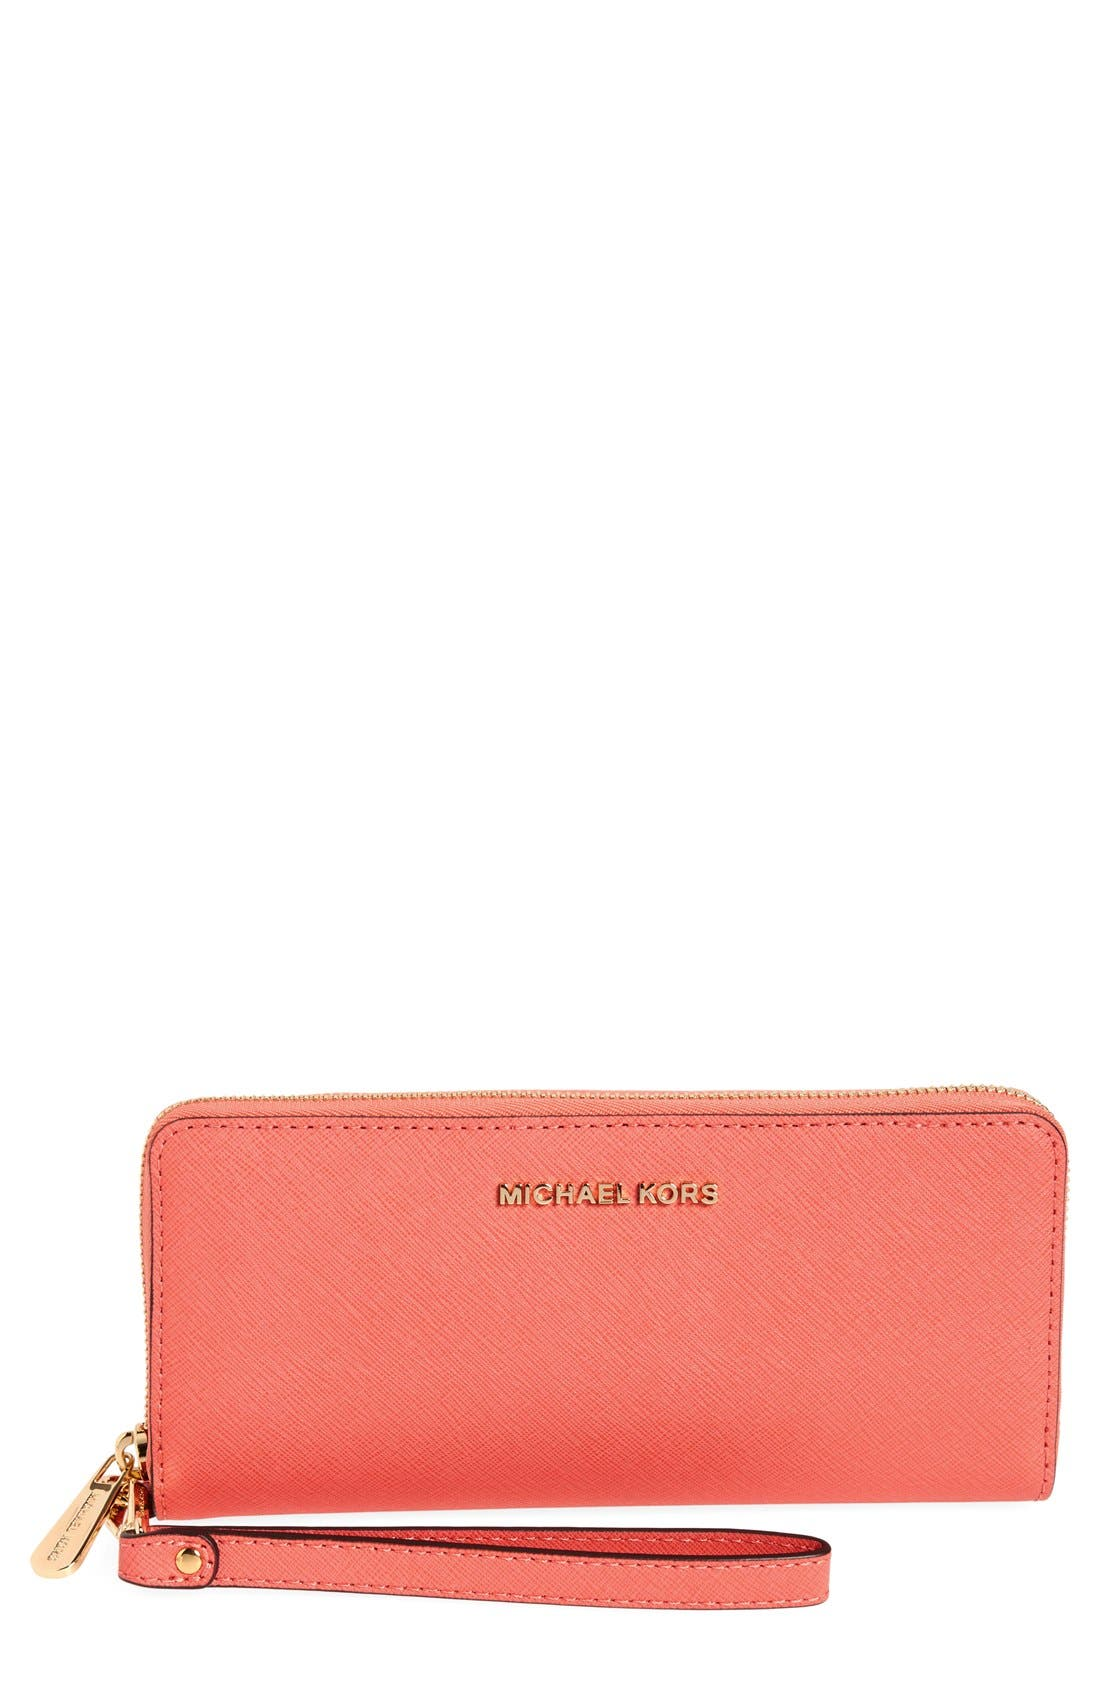 'Jet Set' Leather Travel Wallet,                             Main thumbnail 10, color,